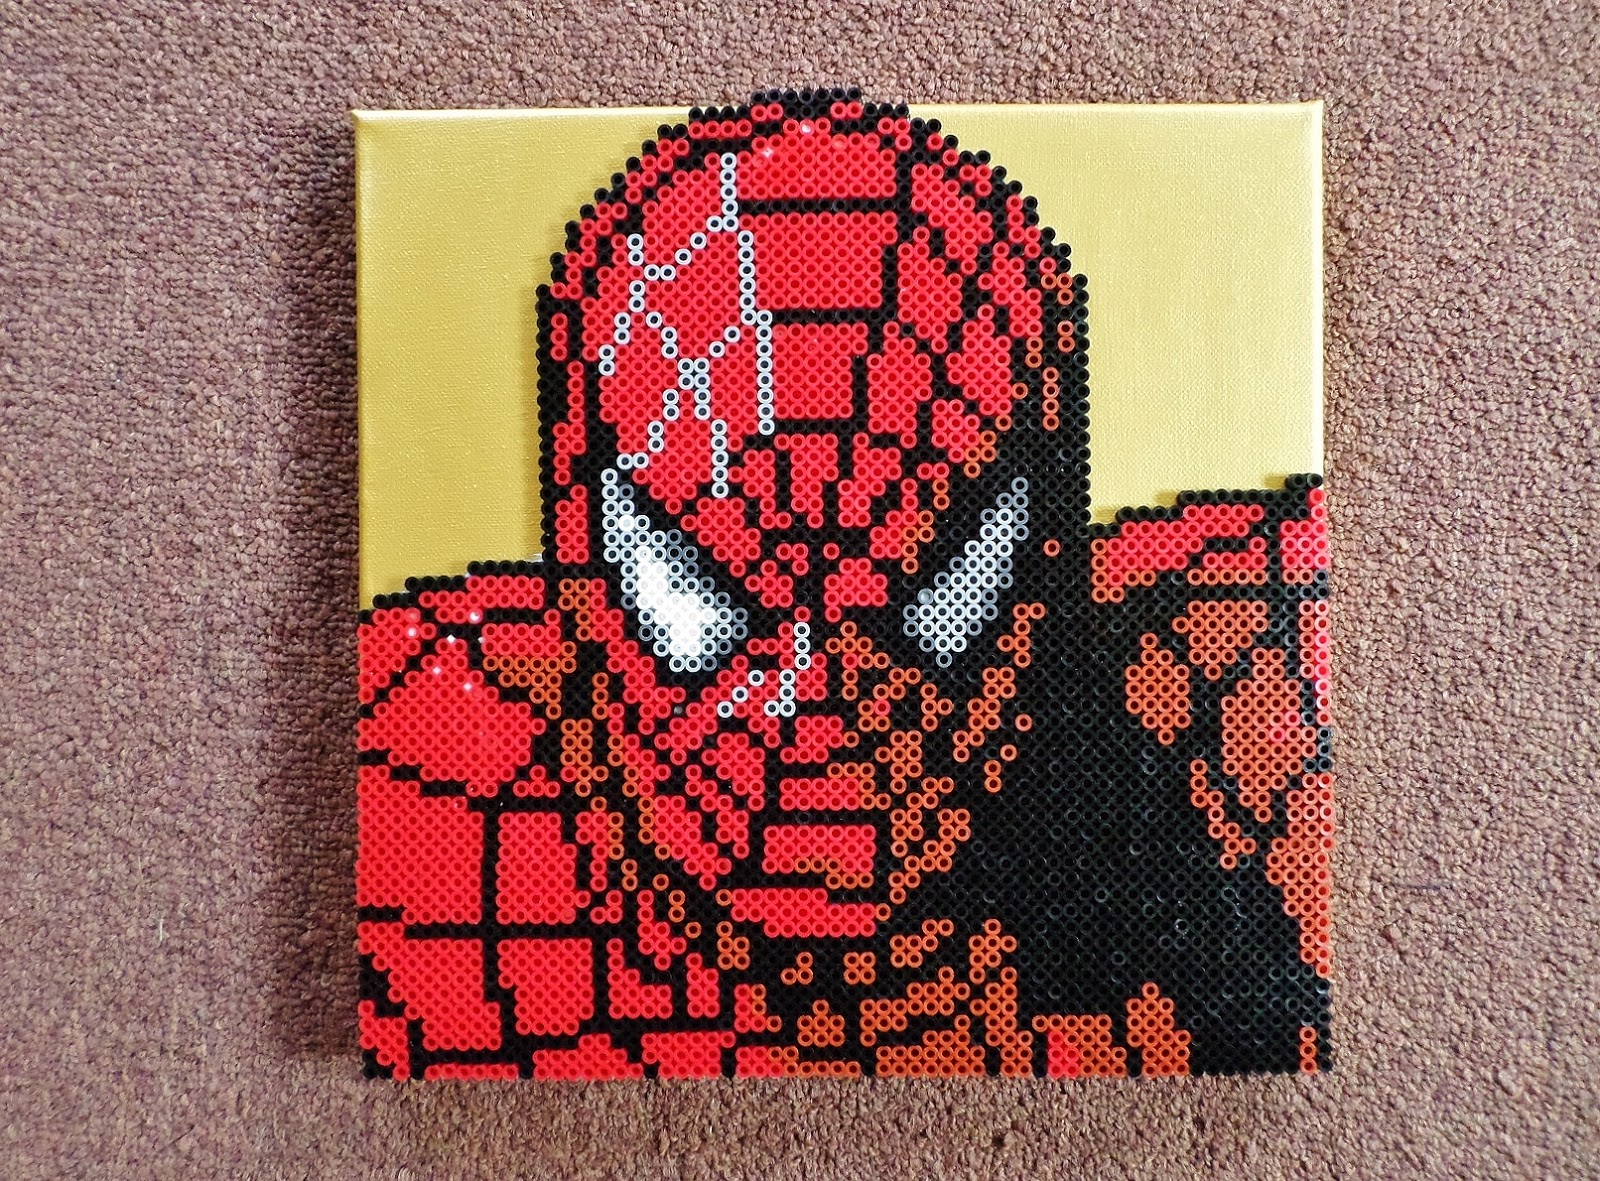 Long Black Fingers : Spiderman Perler On Canvas